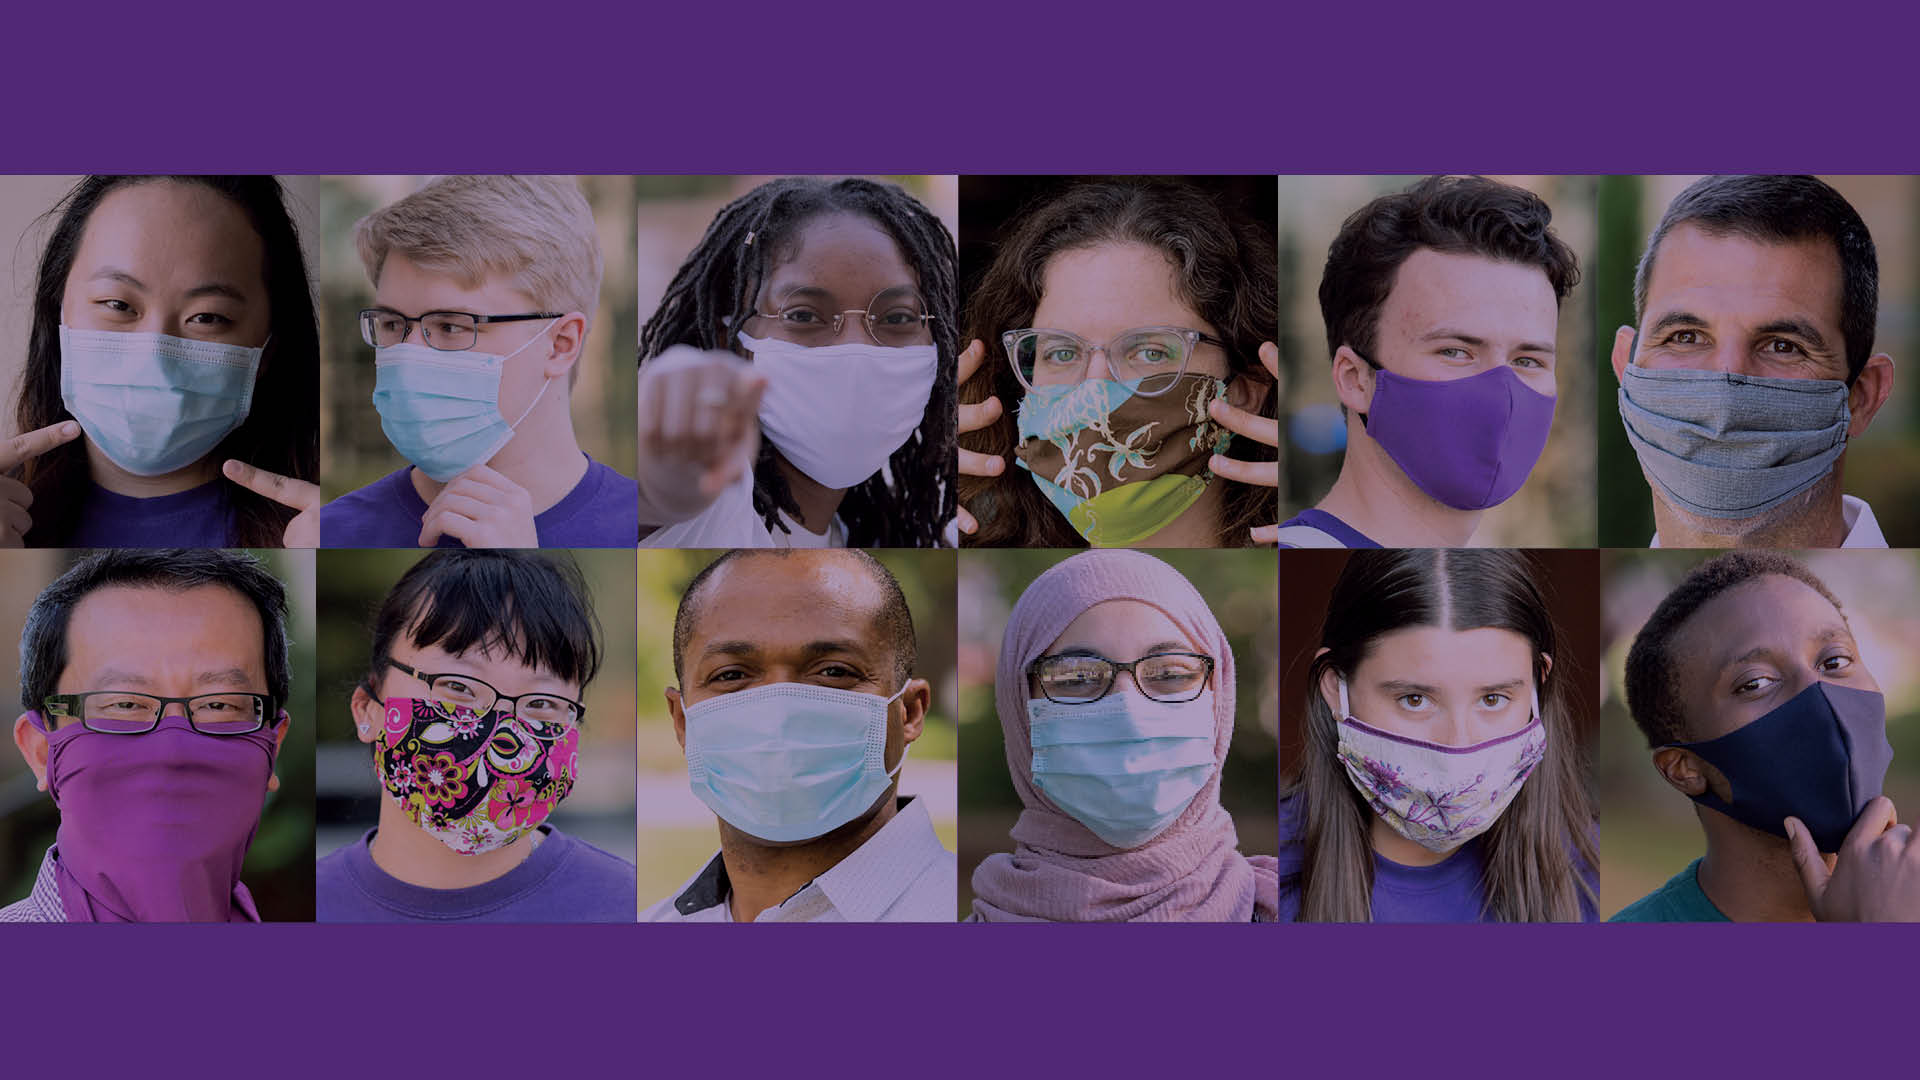 Collage of St. Thomas students wearing masks